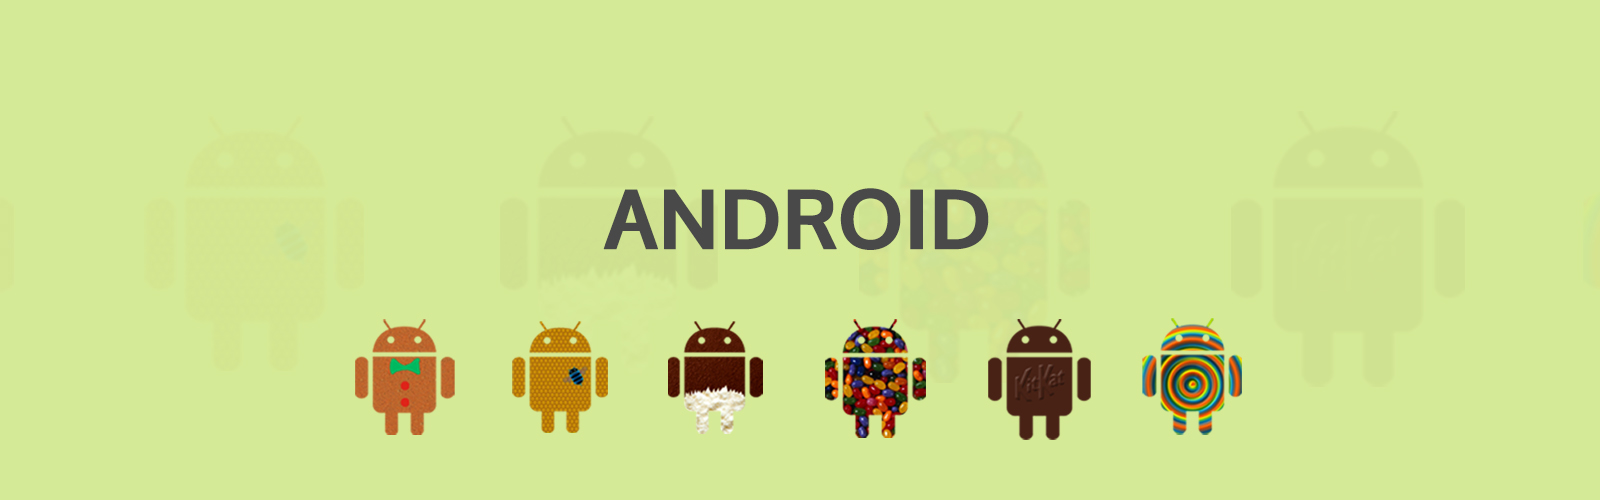 android-mobile-banner-2